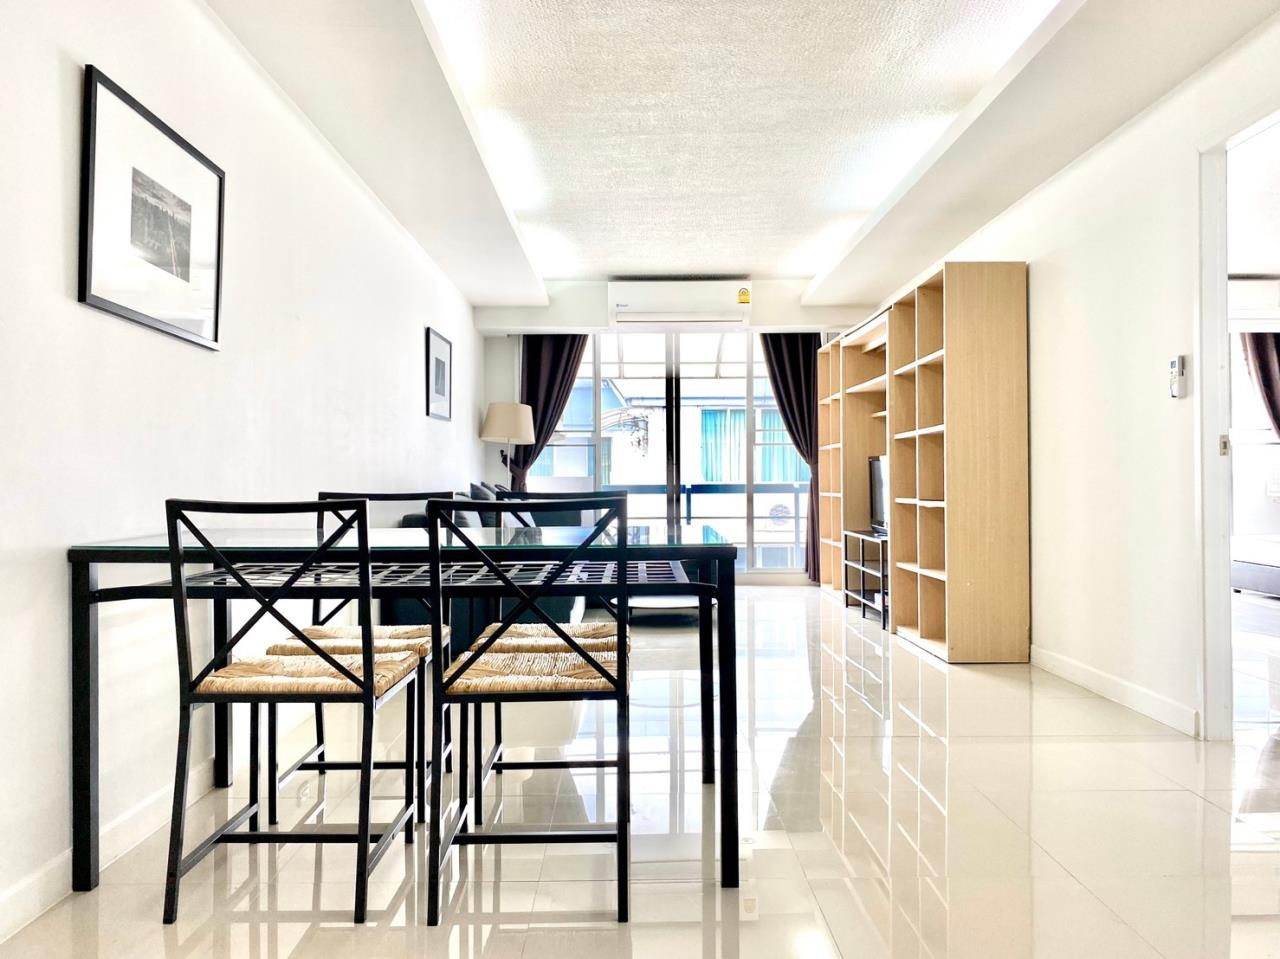 Bestbkkcondos Agency's Waterford 50 2 bedrooms 2 bathrooms 96.8 sqm. 8th Floor for sale 6.582mTHB Rental 28000THB 3